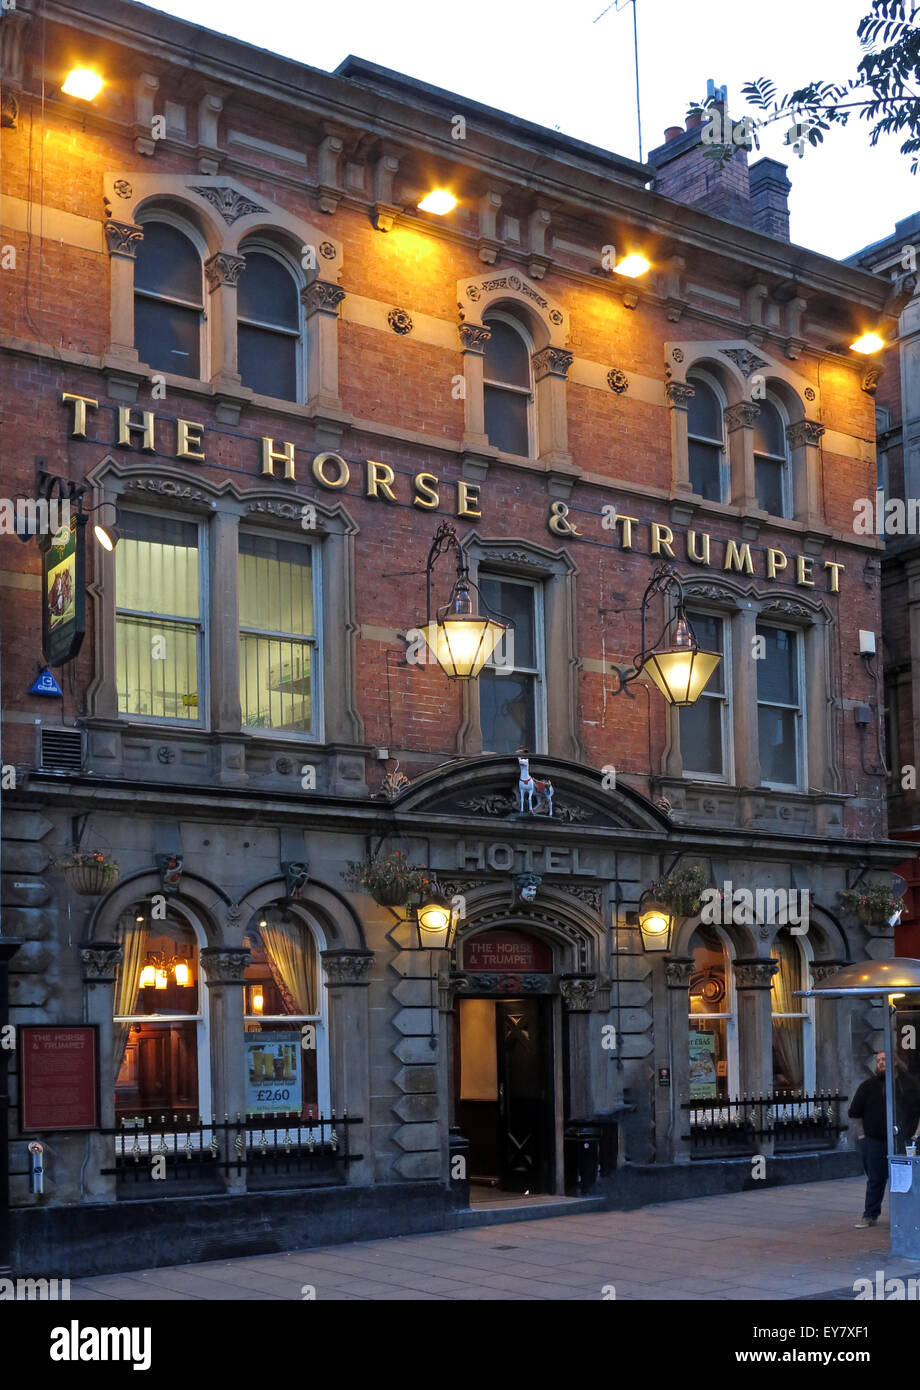 The Horse and Trumpet pub,Leeds at night, Yorkshire, England, UK - Stock Image